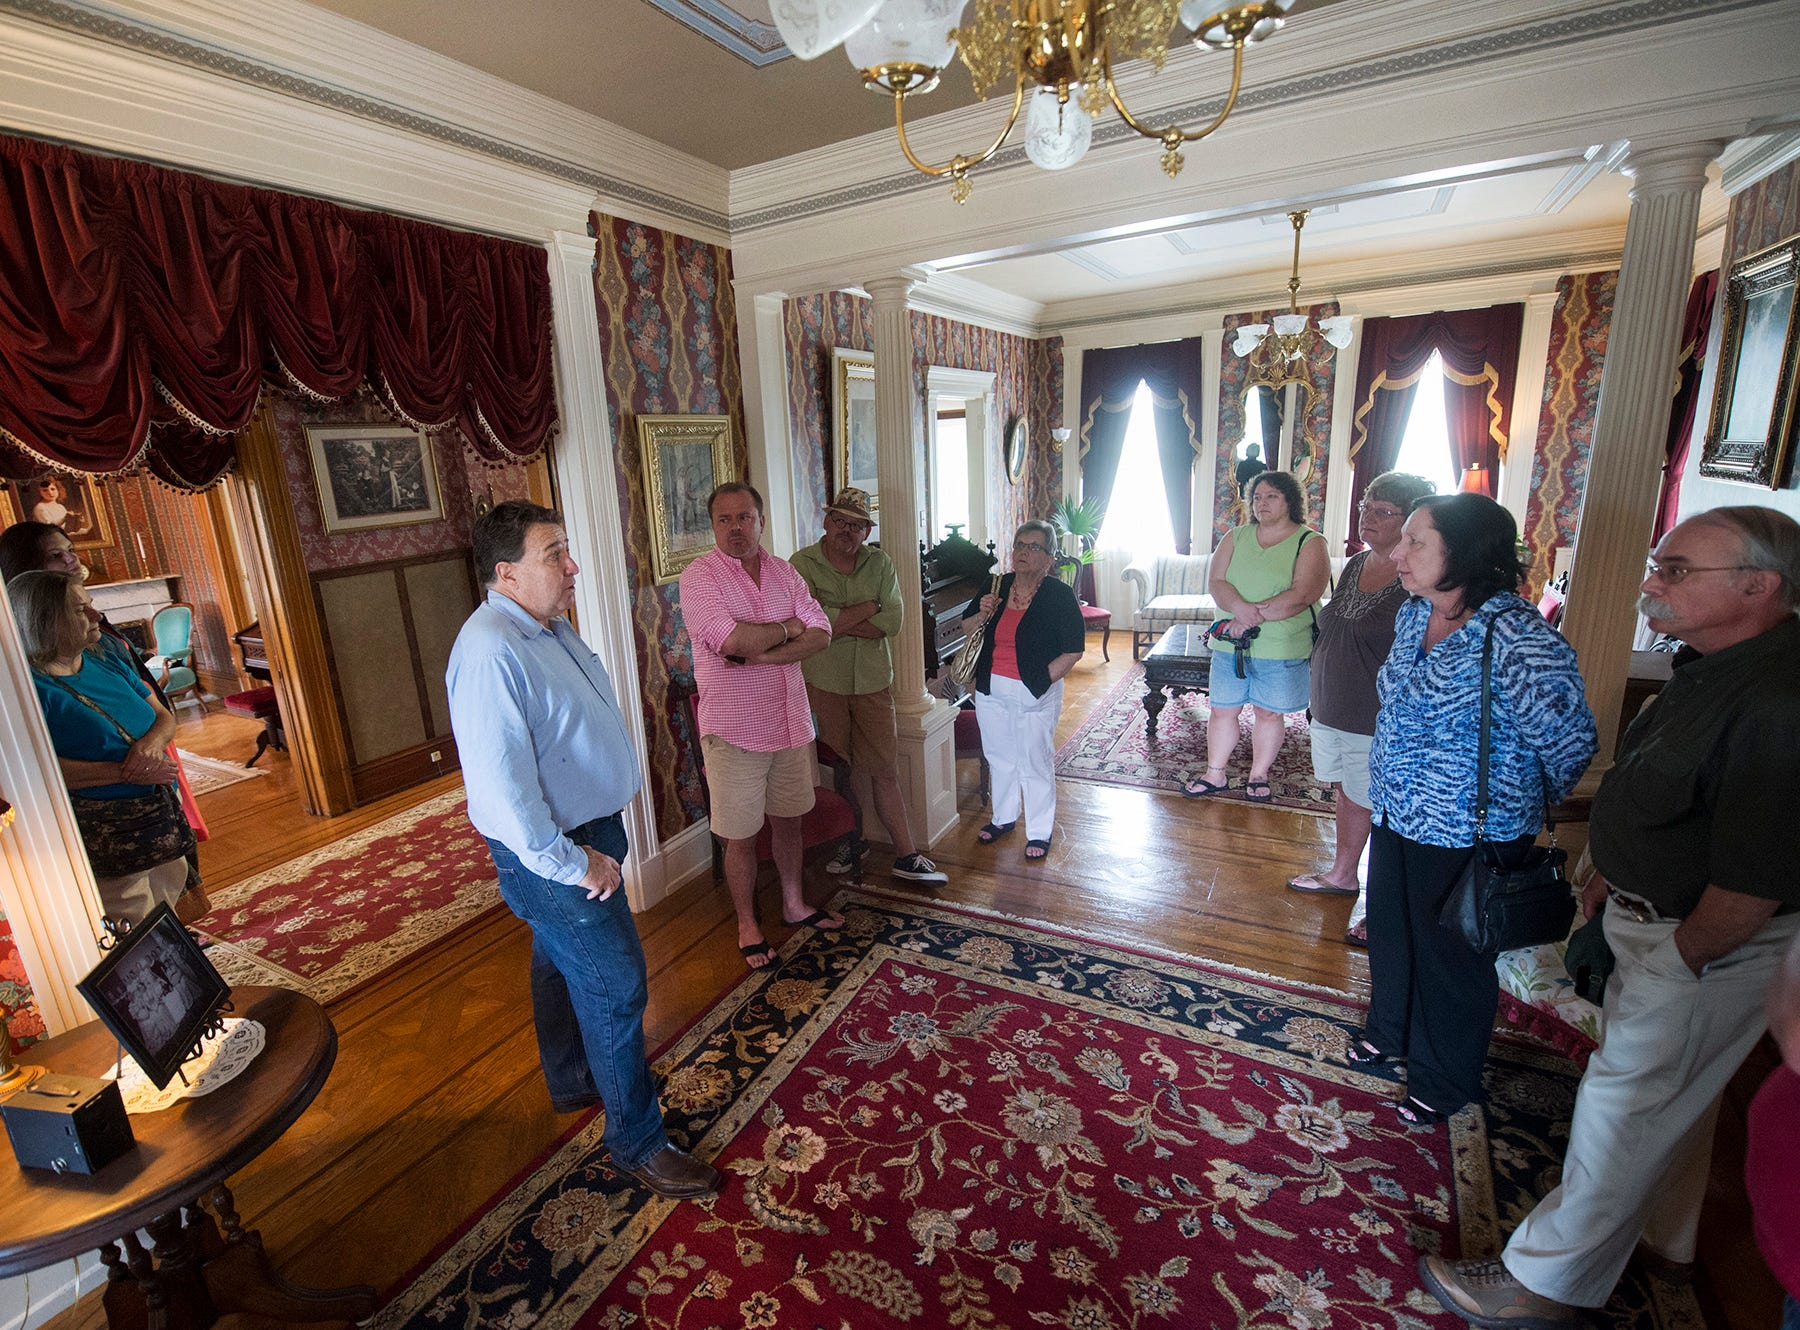 Bill Fitzell gives a tour of the parlor during an open house at the Emig Mansion Bed & Breakfast on Sunday May 17, 2015.